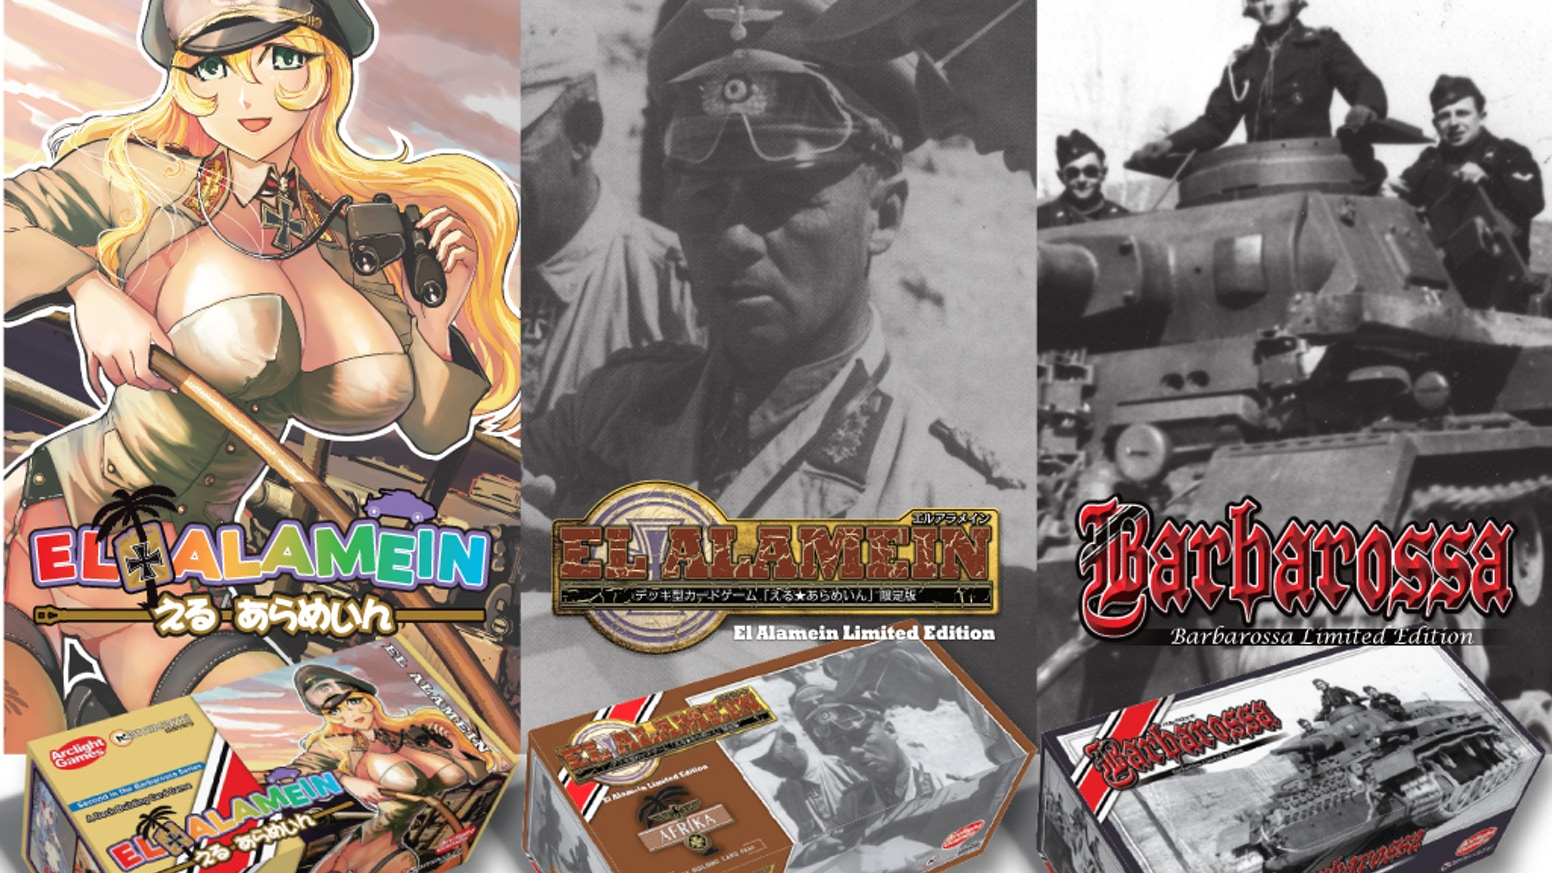 El Alamein is a deck building card game set in a fictional WWII universe where cute German military girls fight the British for Africa!